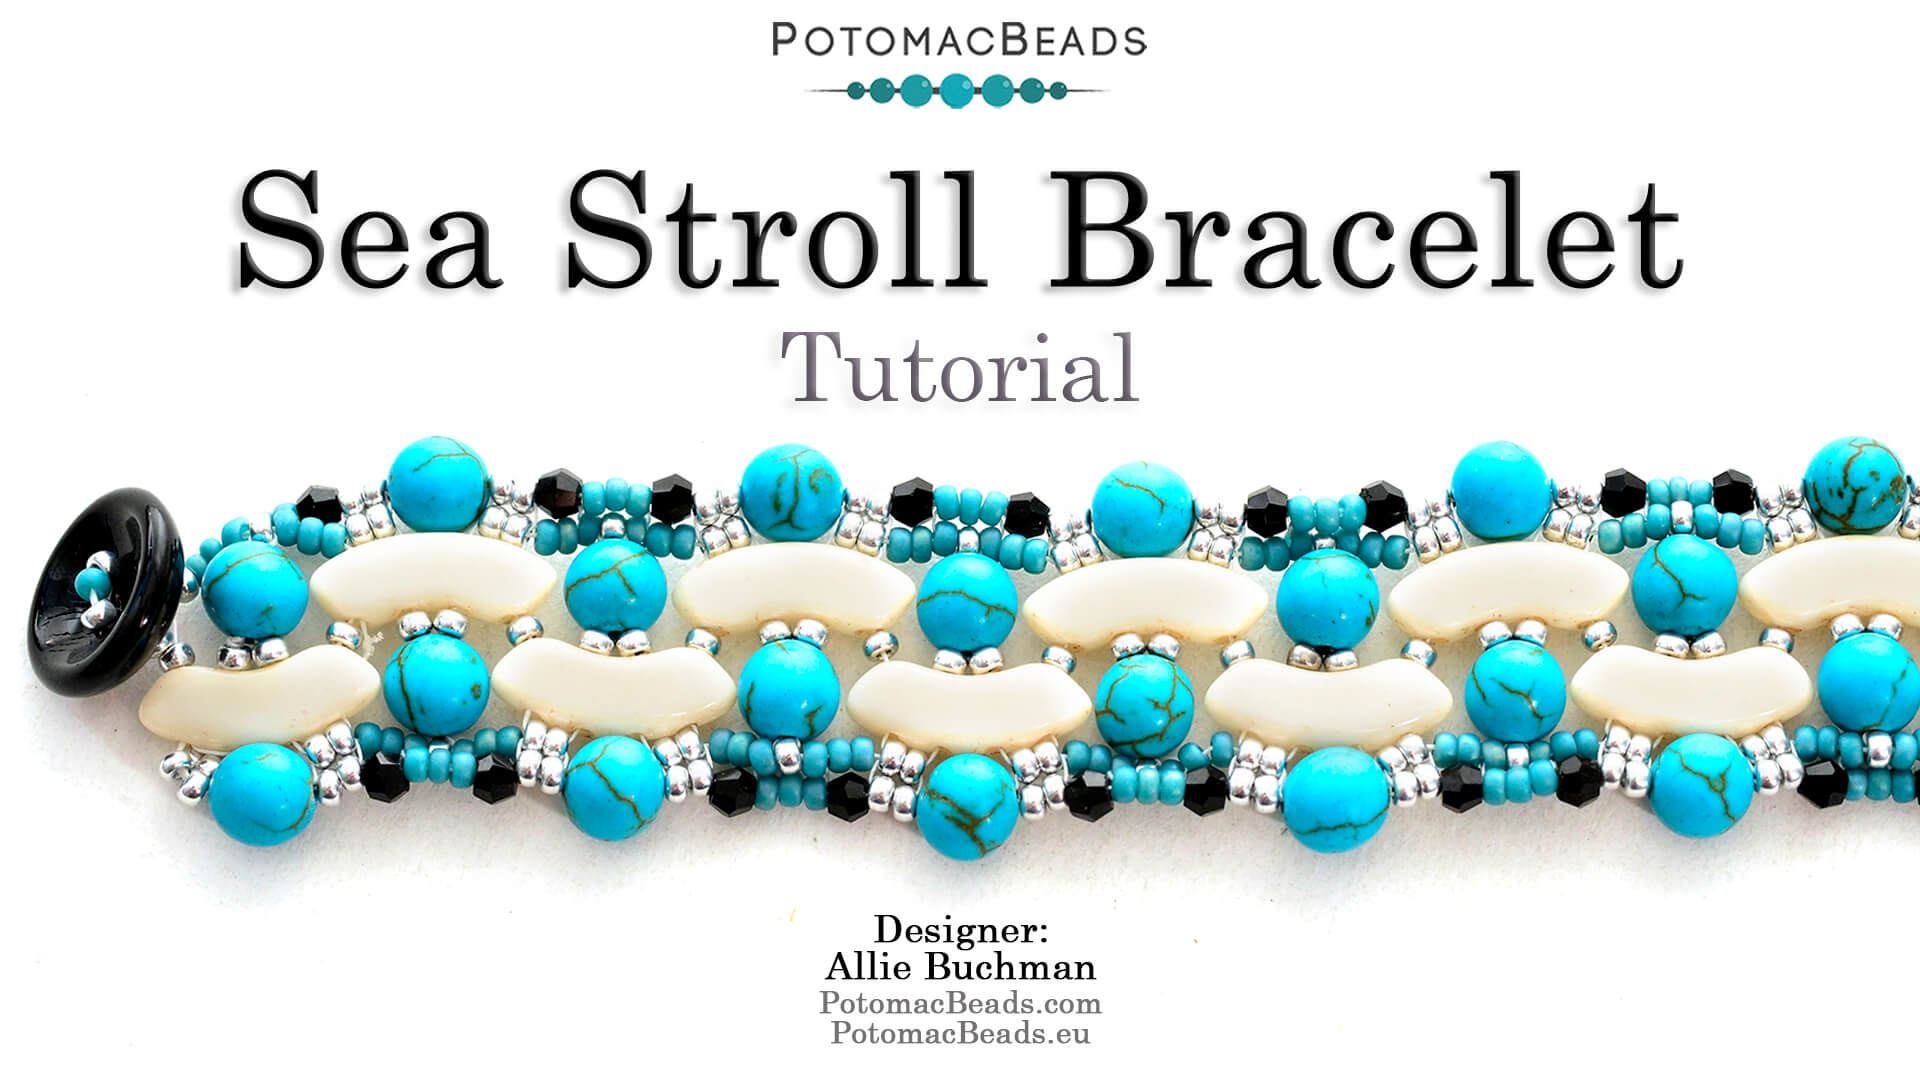 How to Bead / Videos Sorted by Beads / QuadBow & PieDuo Bead Videos / Sea Stroll Bracelet Tutorial